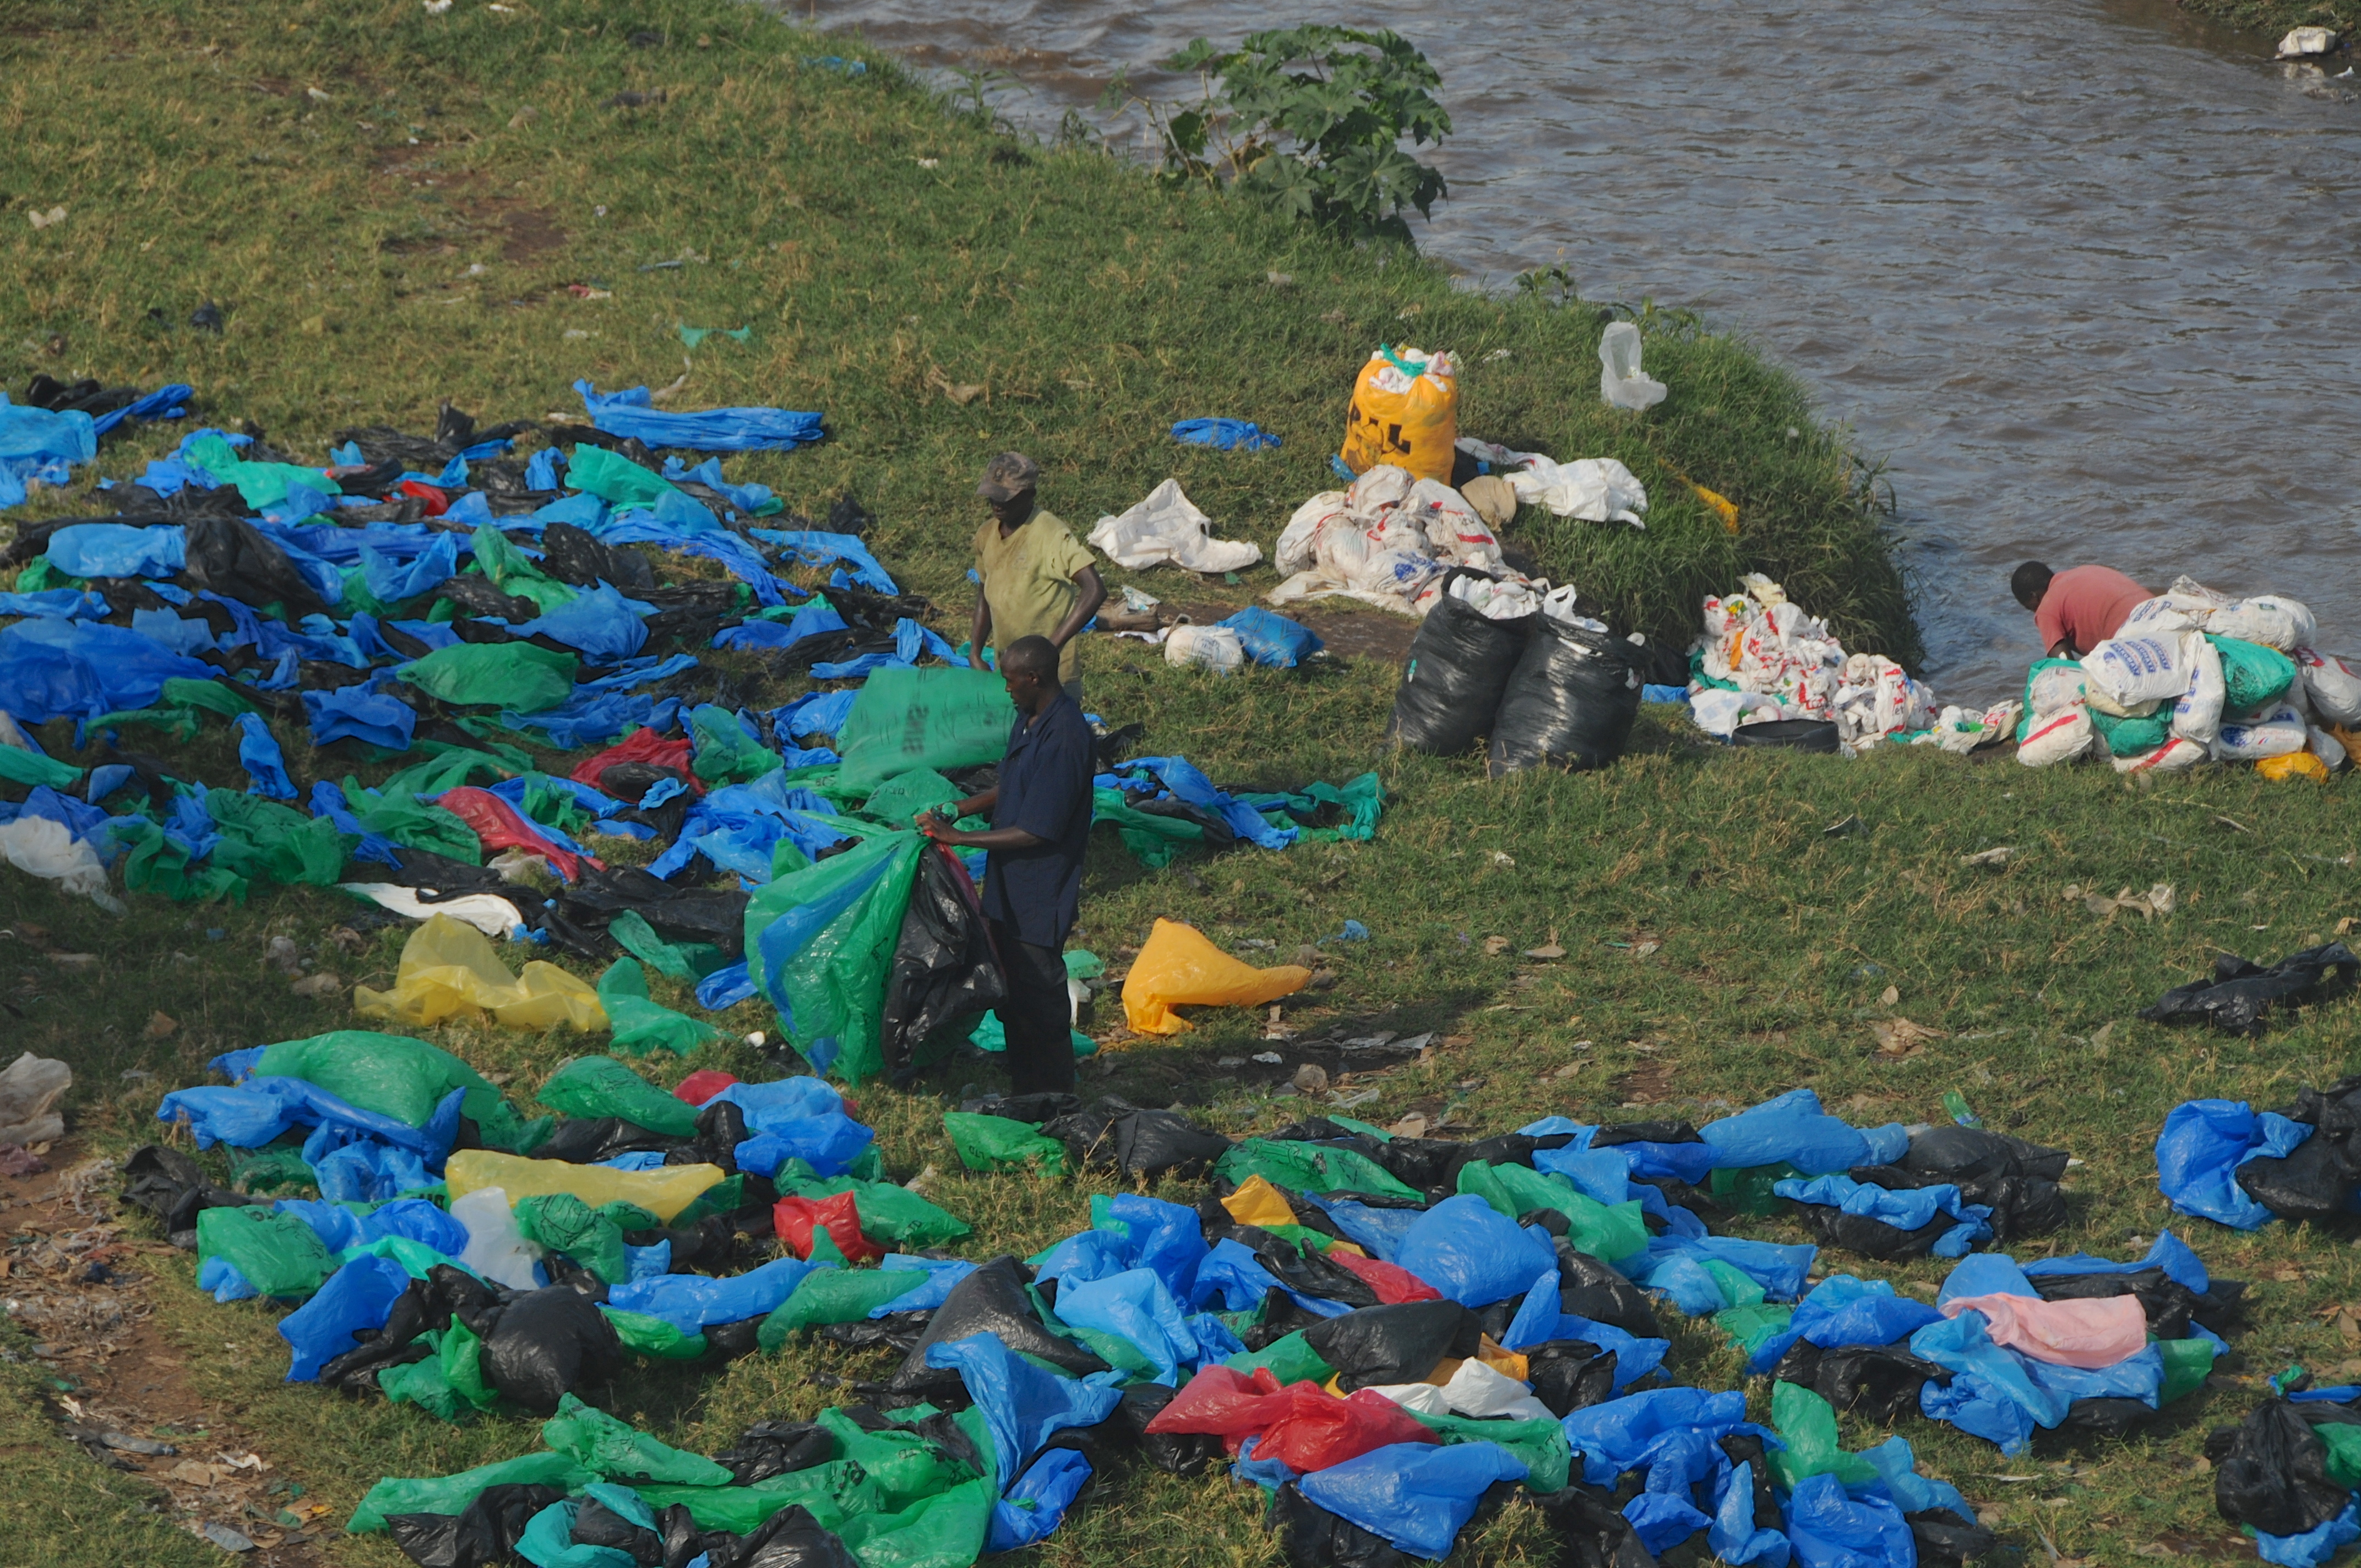 This undated photo shows Kenyans collecting used plastic bags from Nairobi River to resell in marketplaces near the Mukuru slum in Kenya.